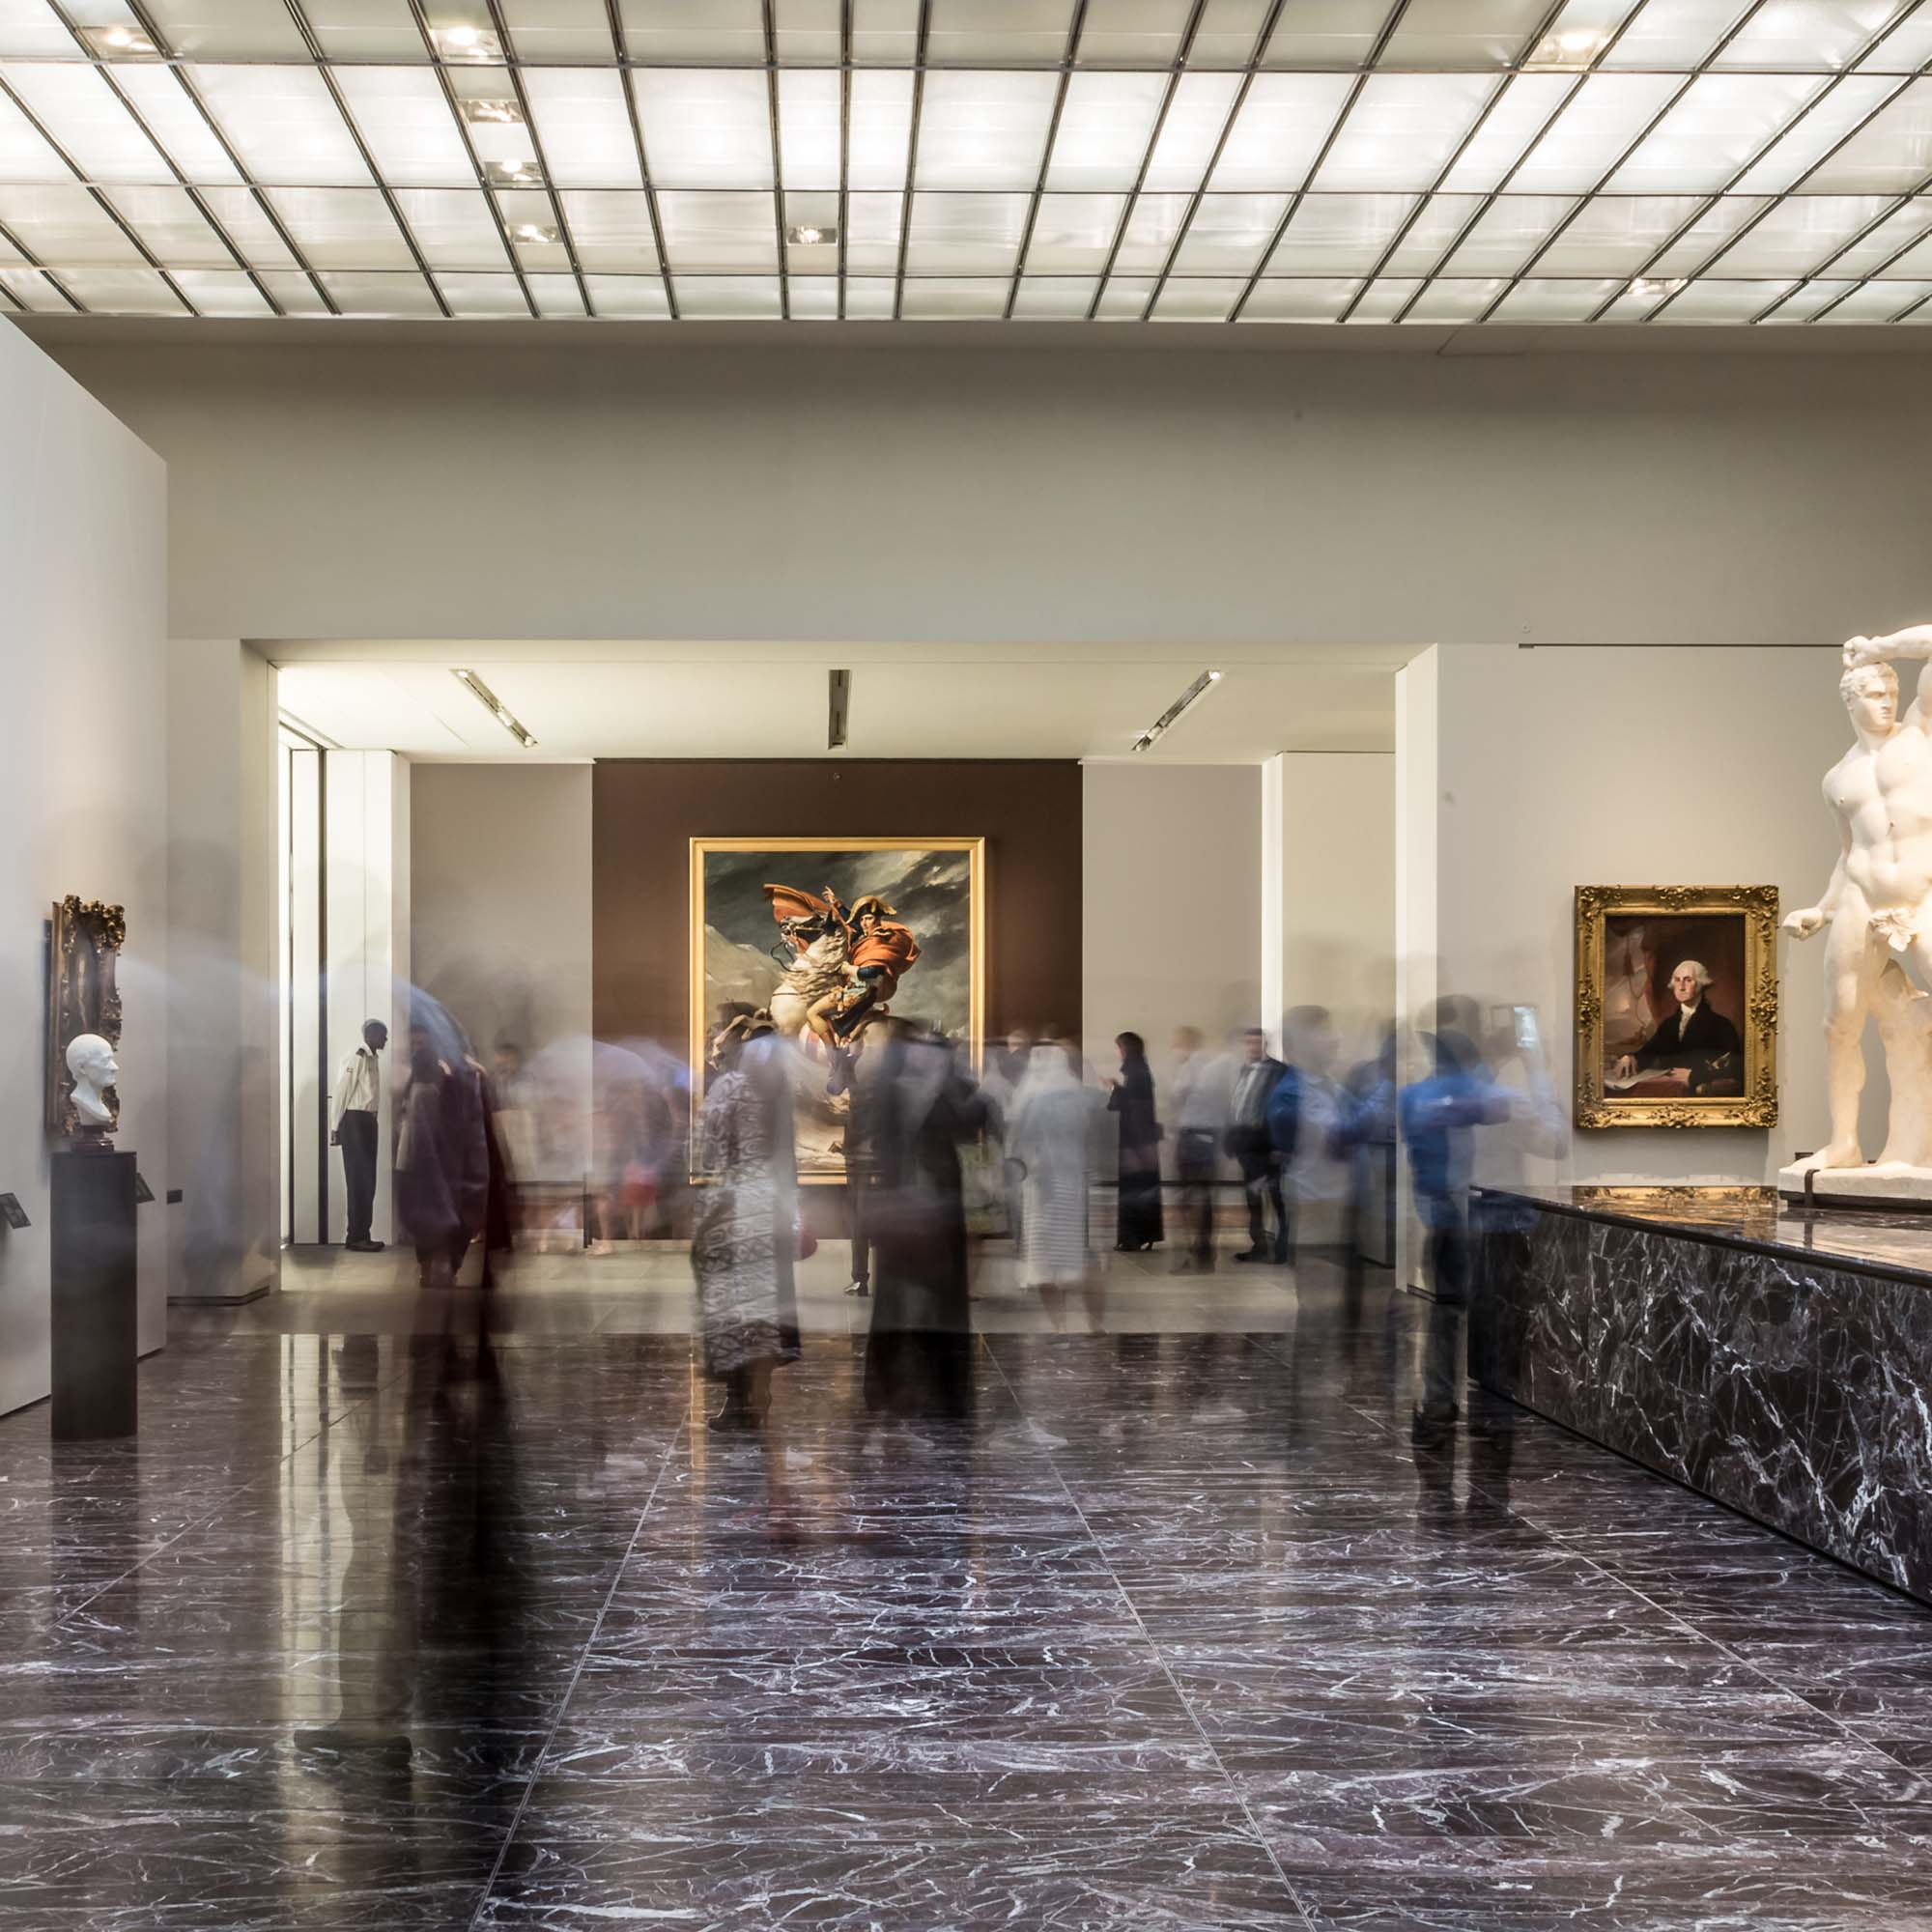 TELLING THE STORY OF A MUSEUM OF THE 21st CENTURY, visitor experience, Louvre Abu Dhabi